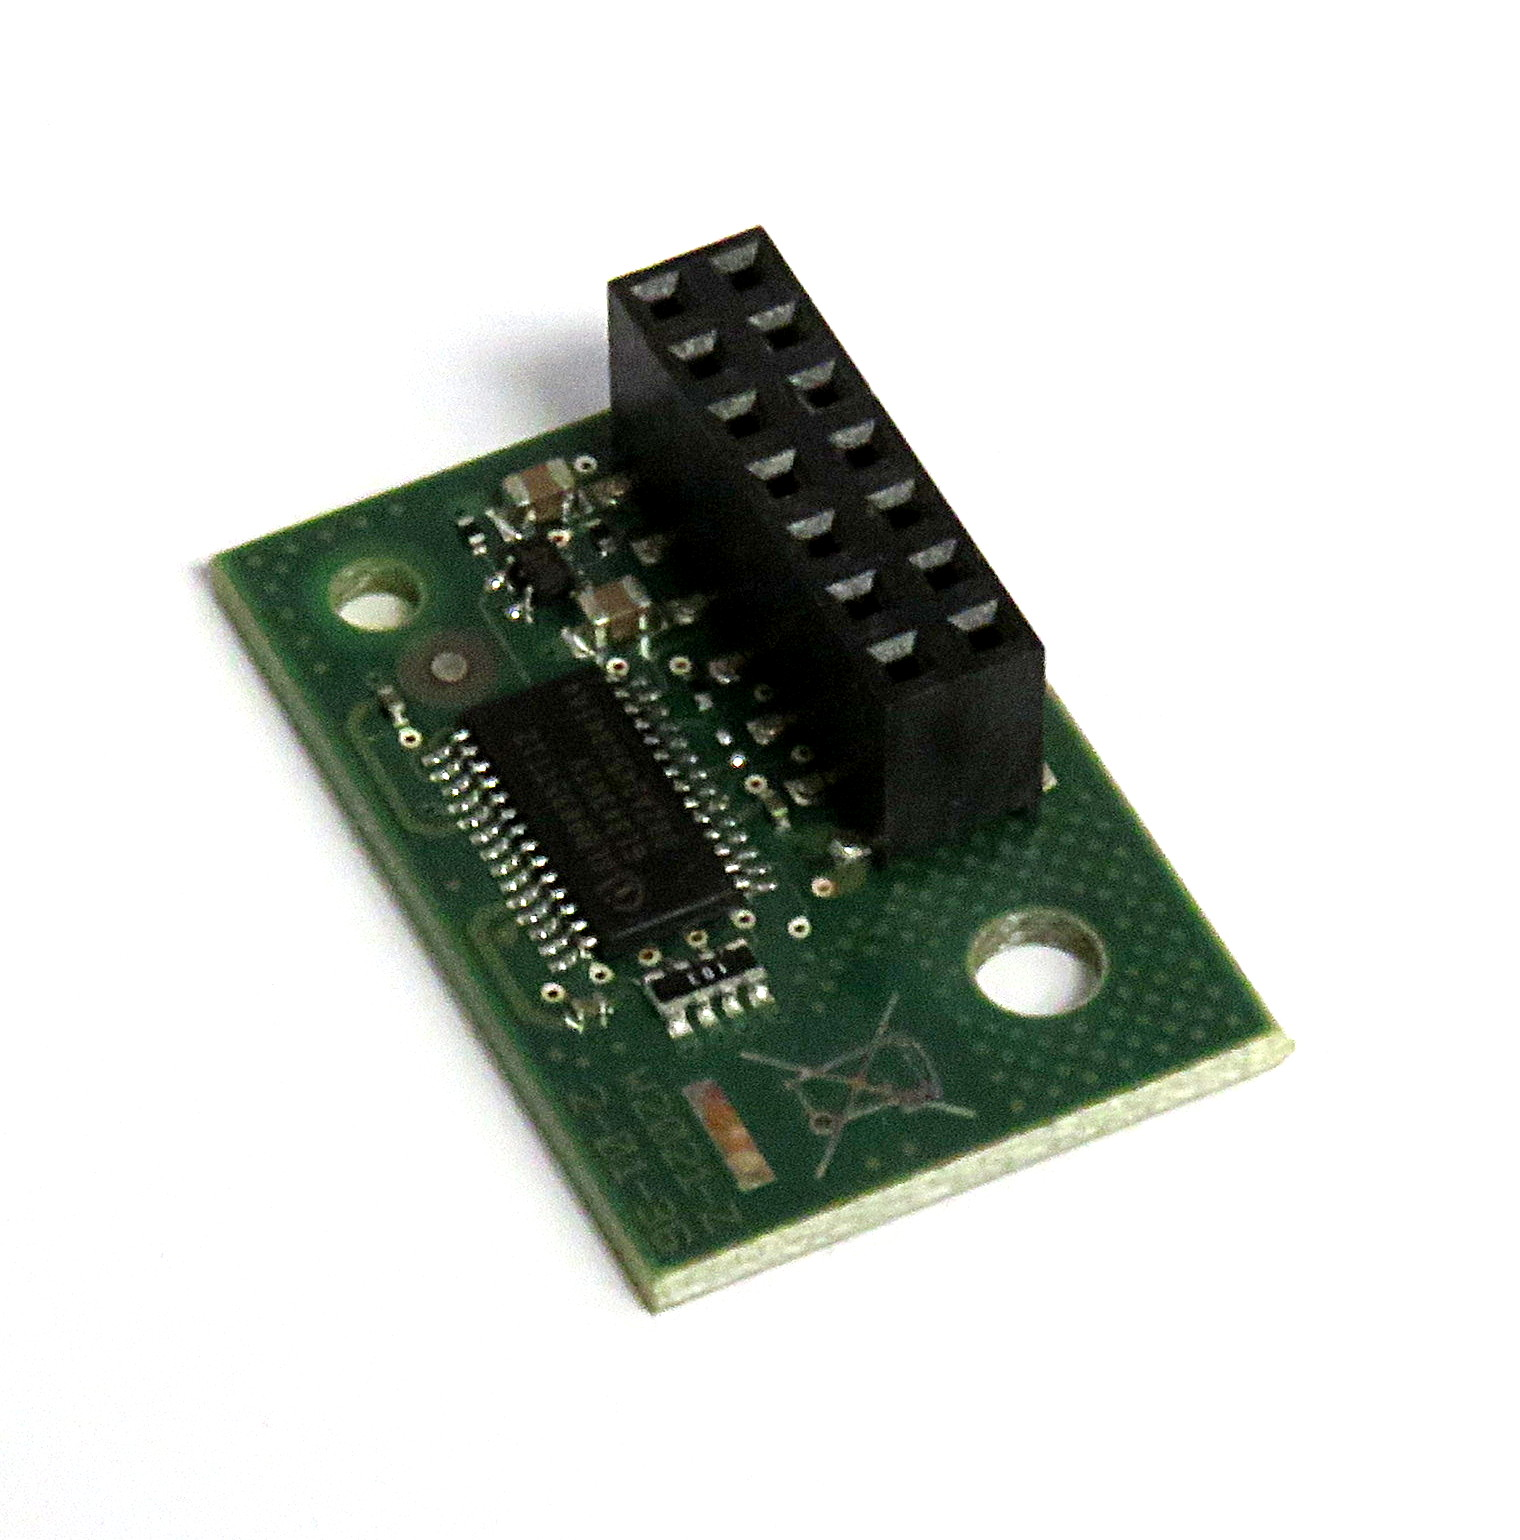 trusted platform module tpm The trusted platform module (tpm) is a hardware device that is basically a secure micro-controller (a chip) with added cryptographic functionality.